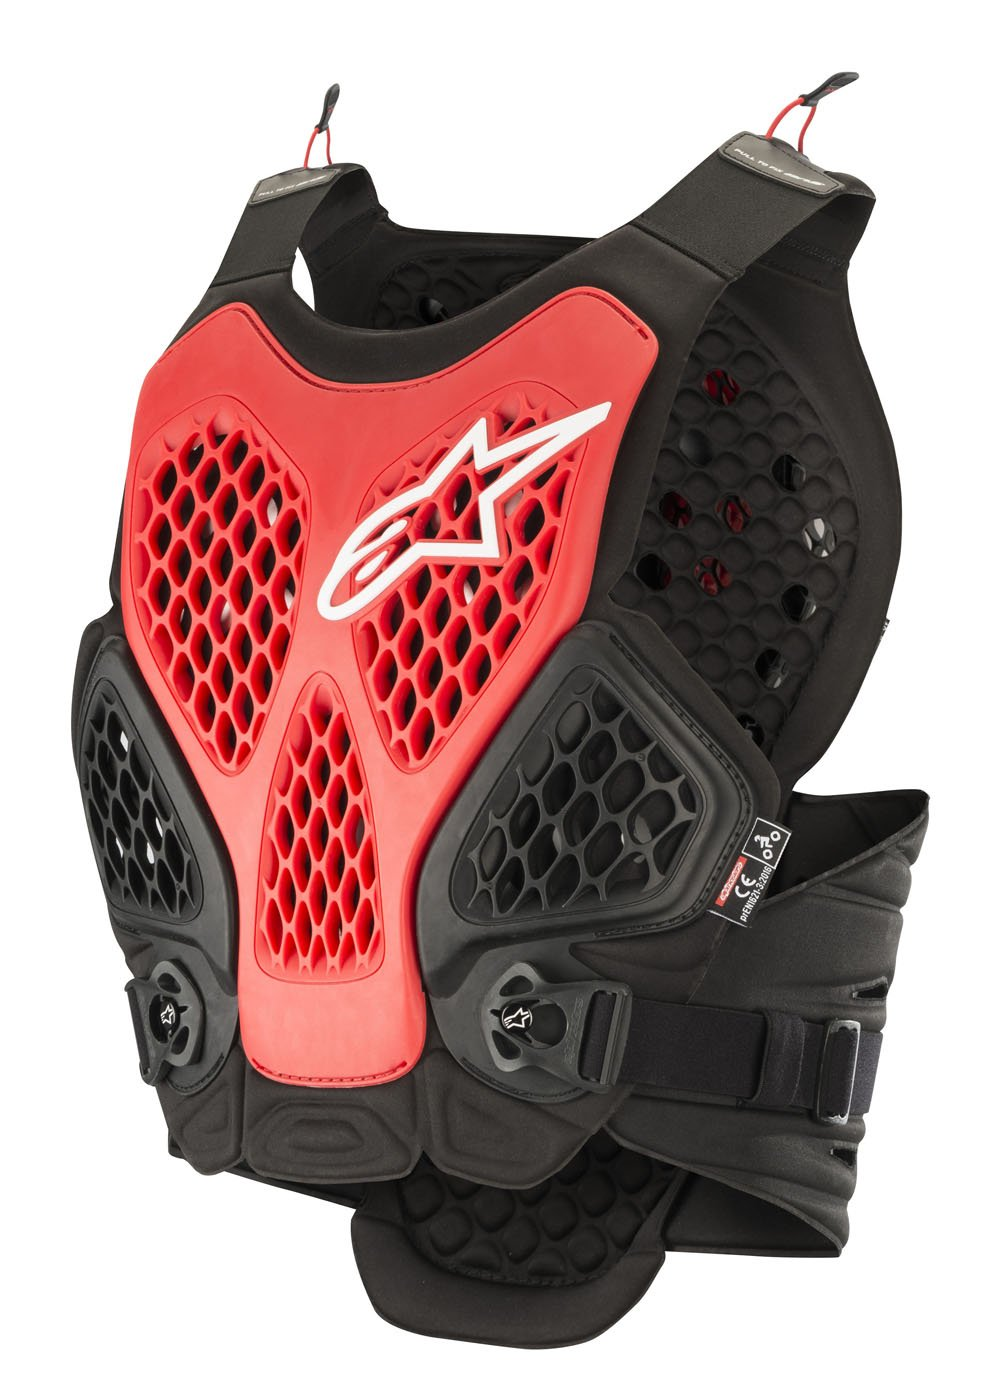 Alpinestars Plus Protection Vest body armor | Vests